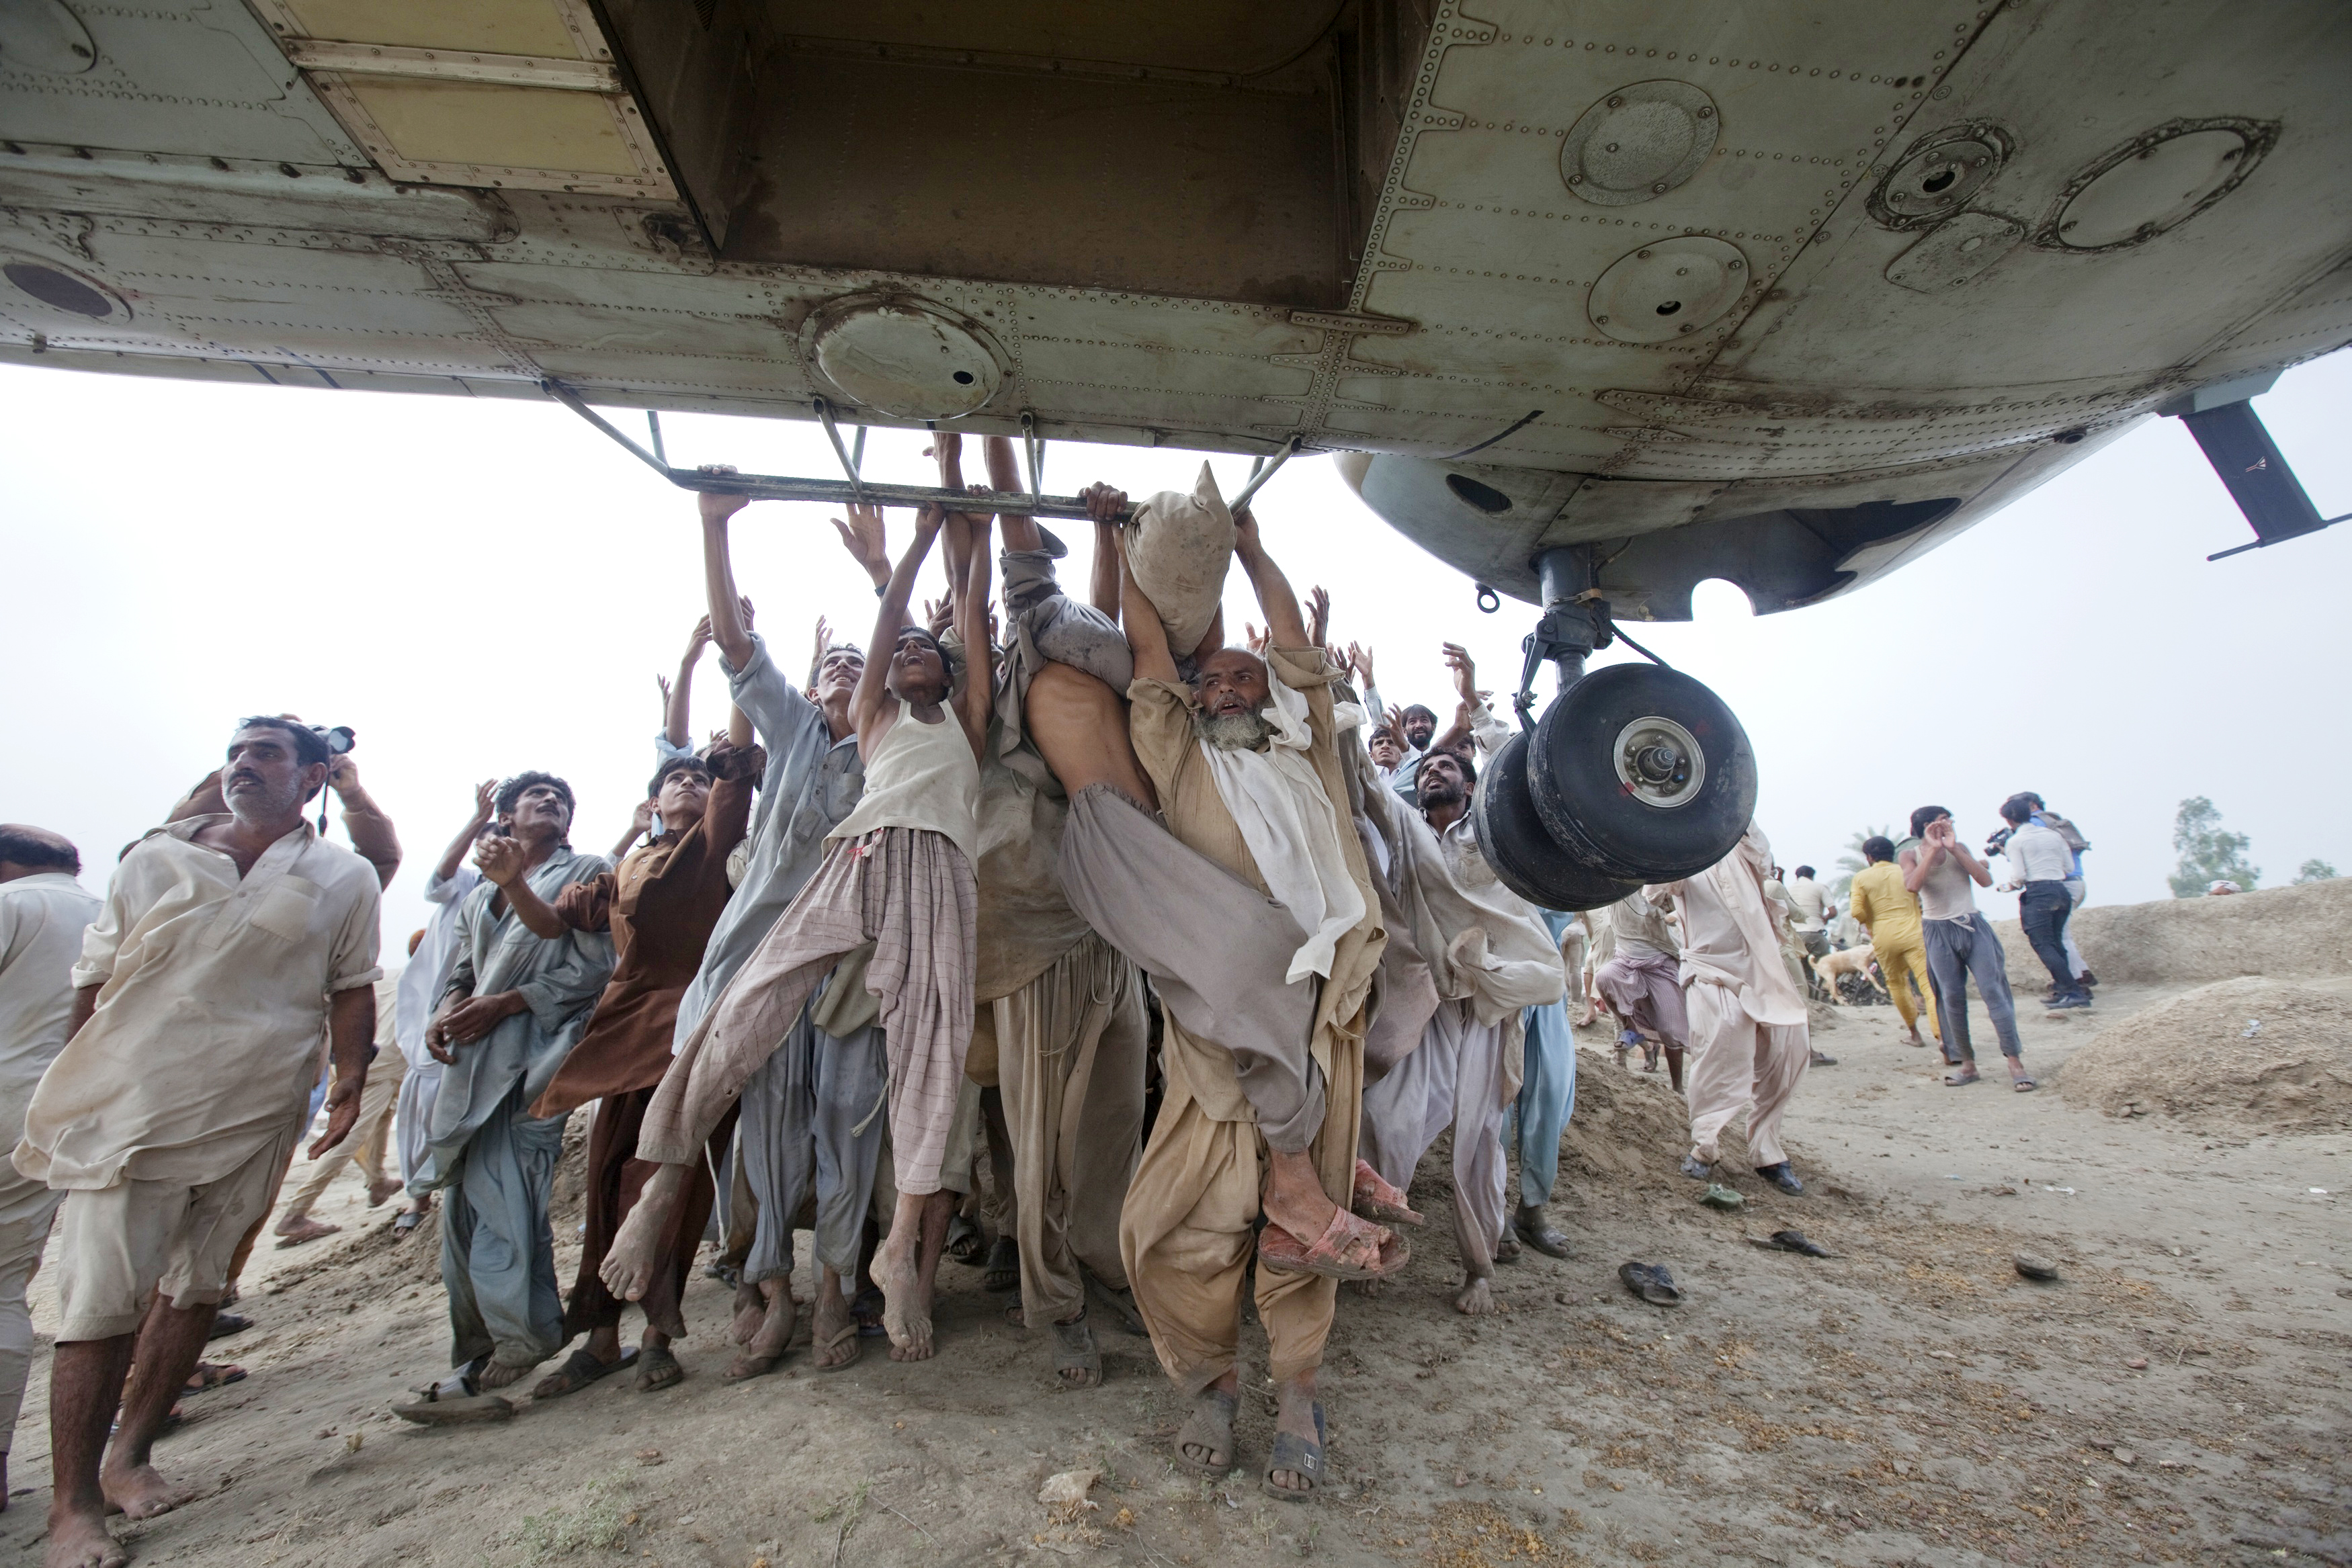 File photo of Marooned flood victims trying to grab the side bars of a hovering Army helicopter which arrived to distribute food supplies in the Muzaffargarh district of Pakistan's Punjab province